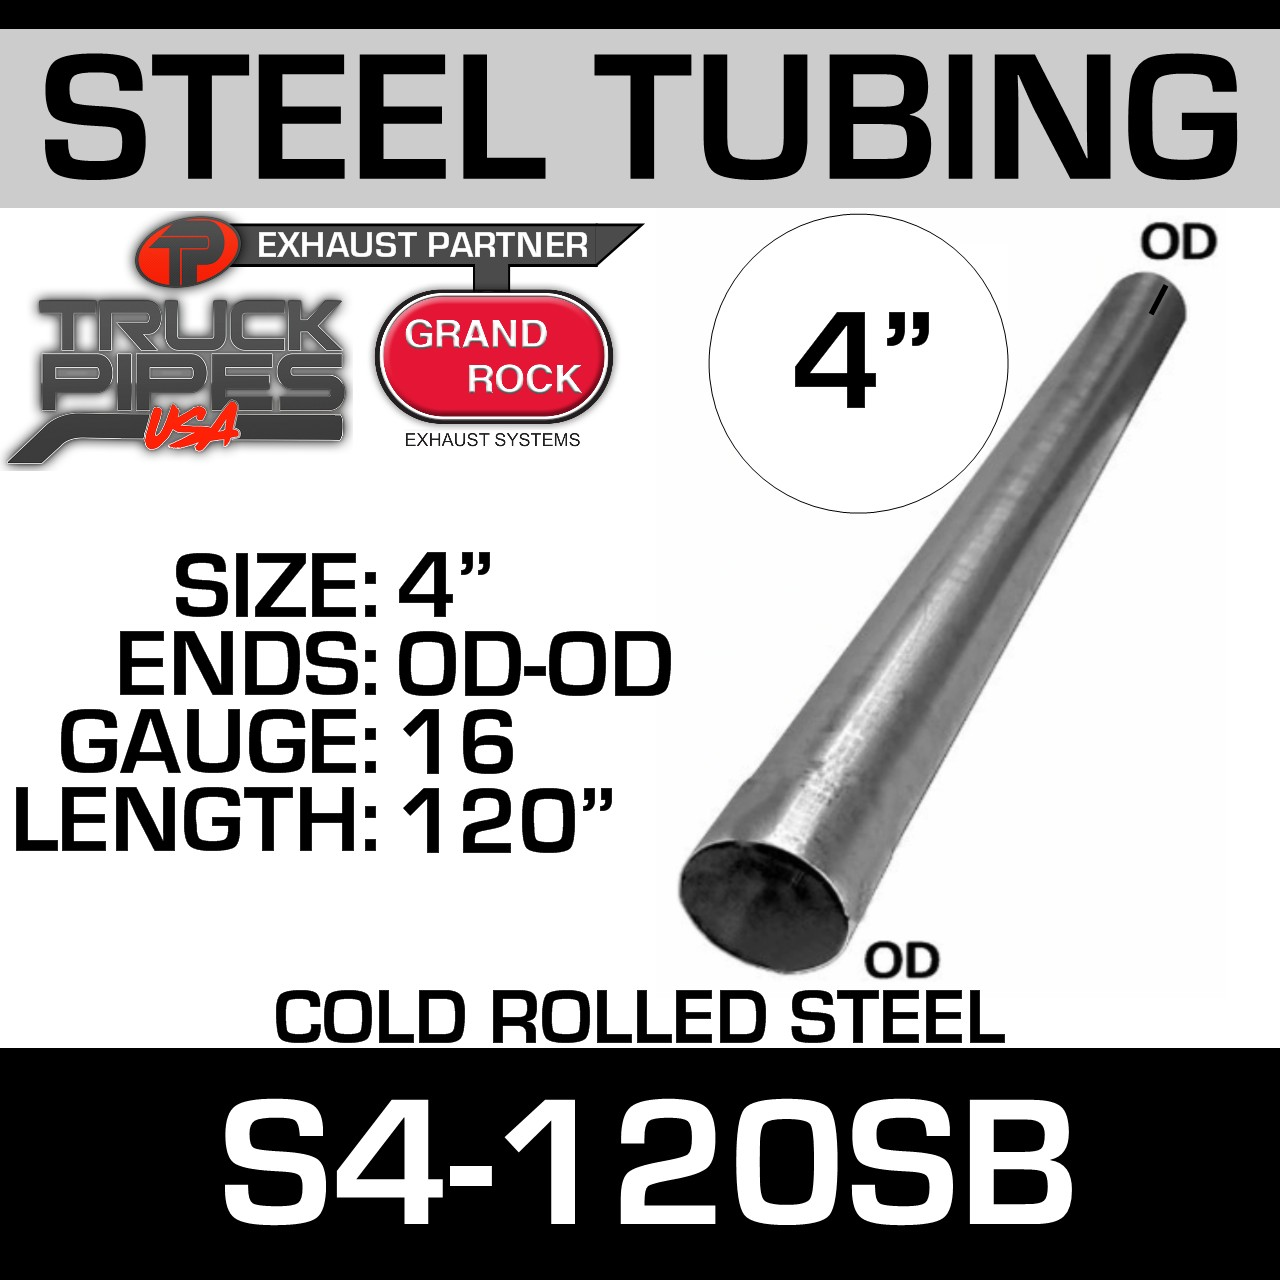 s4-120sb-cold-roll-steel-exhaust-tubing-4-inch-diameter-od-end-120-inches-long.jpg